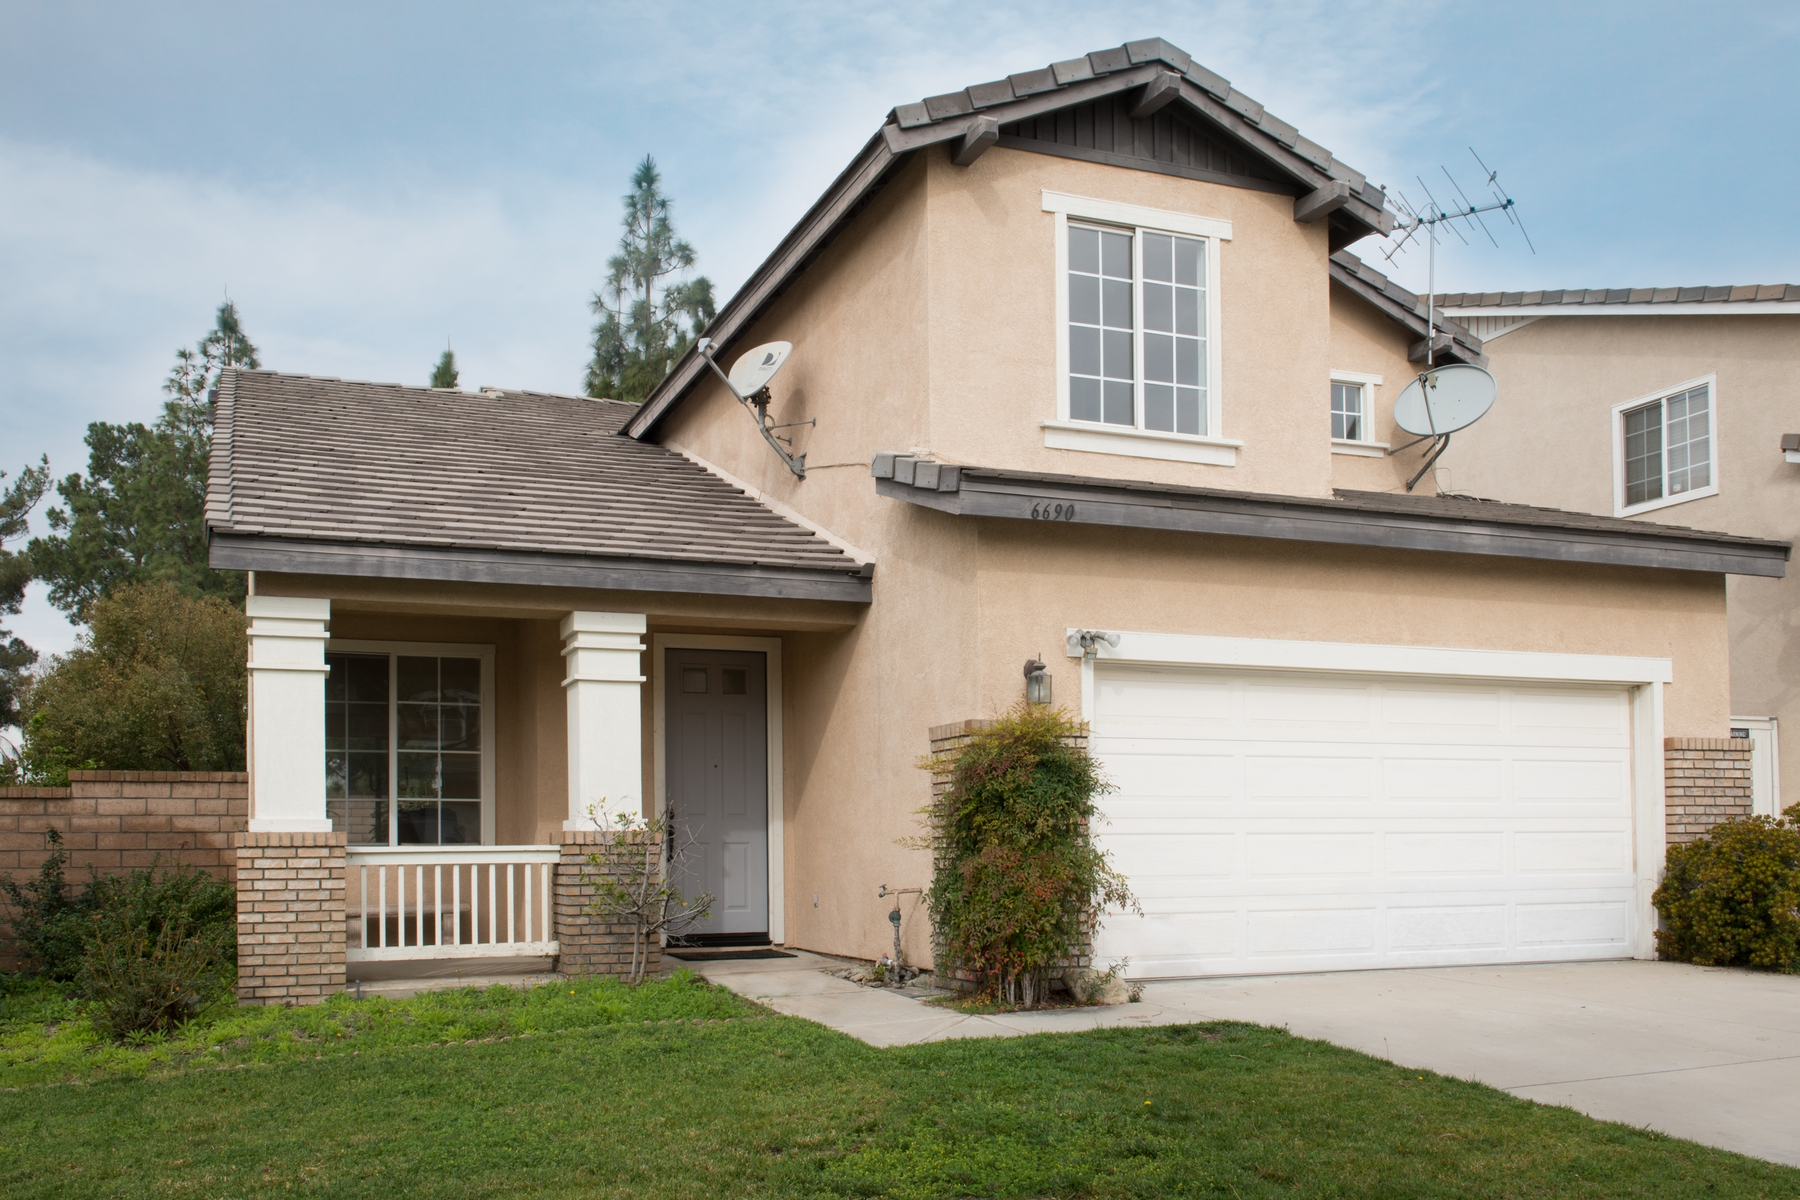 Single Family Home for Sale at 6690 Summerstone Ct, Rancho Cucamonga 91701 Rancho Cucamonga, California 91701 United States